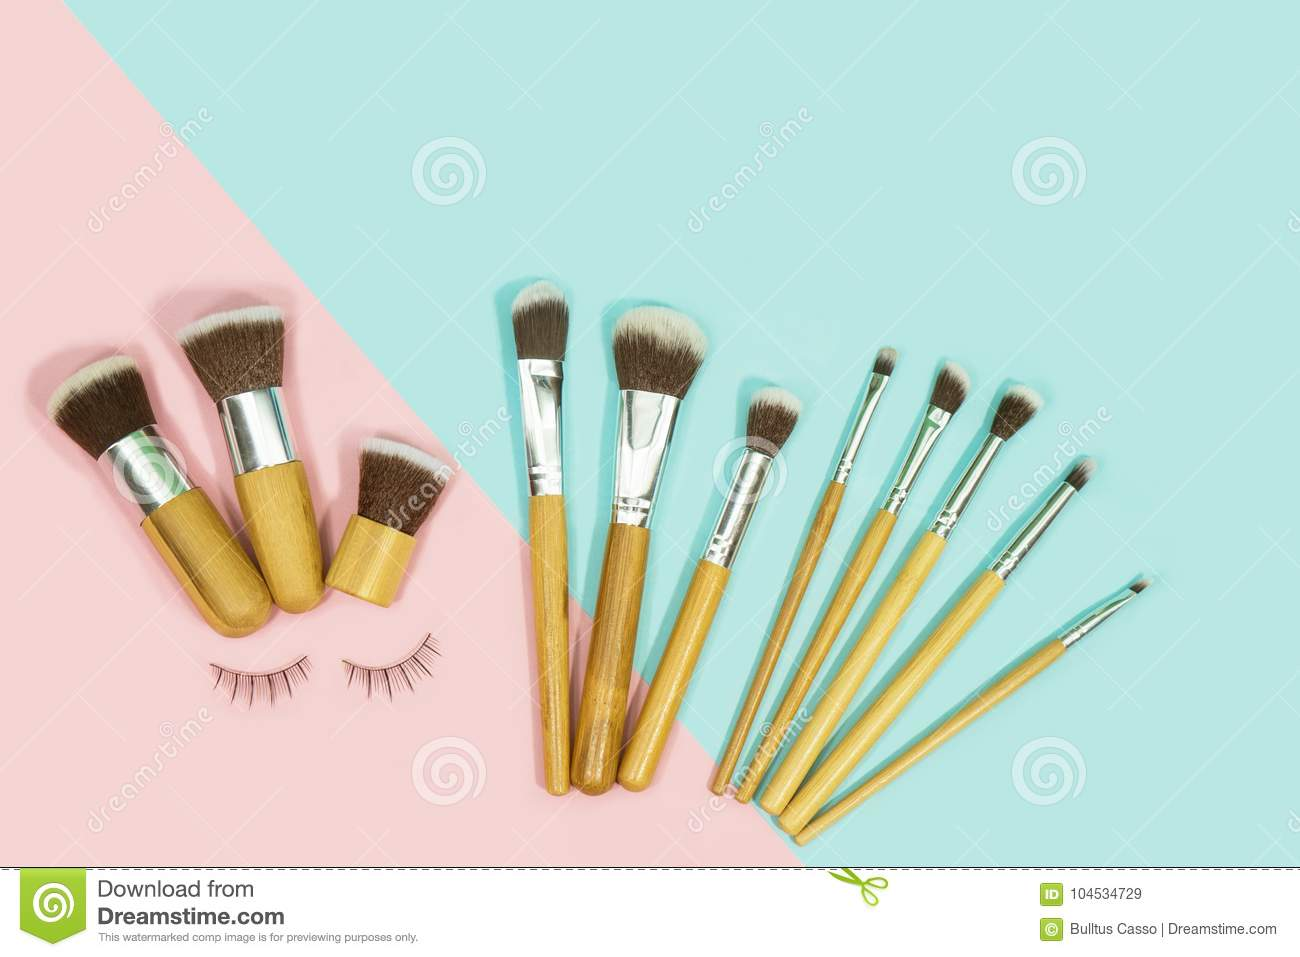 Set of makeup brushes on pink and aqua colored composed stock